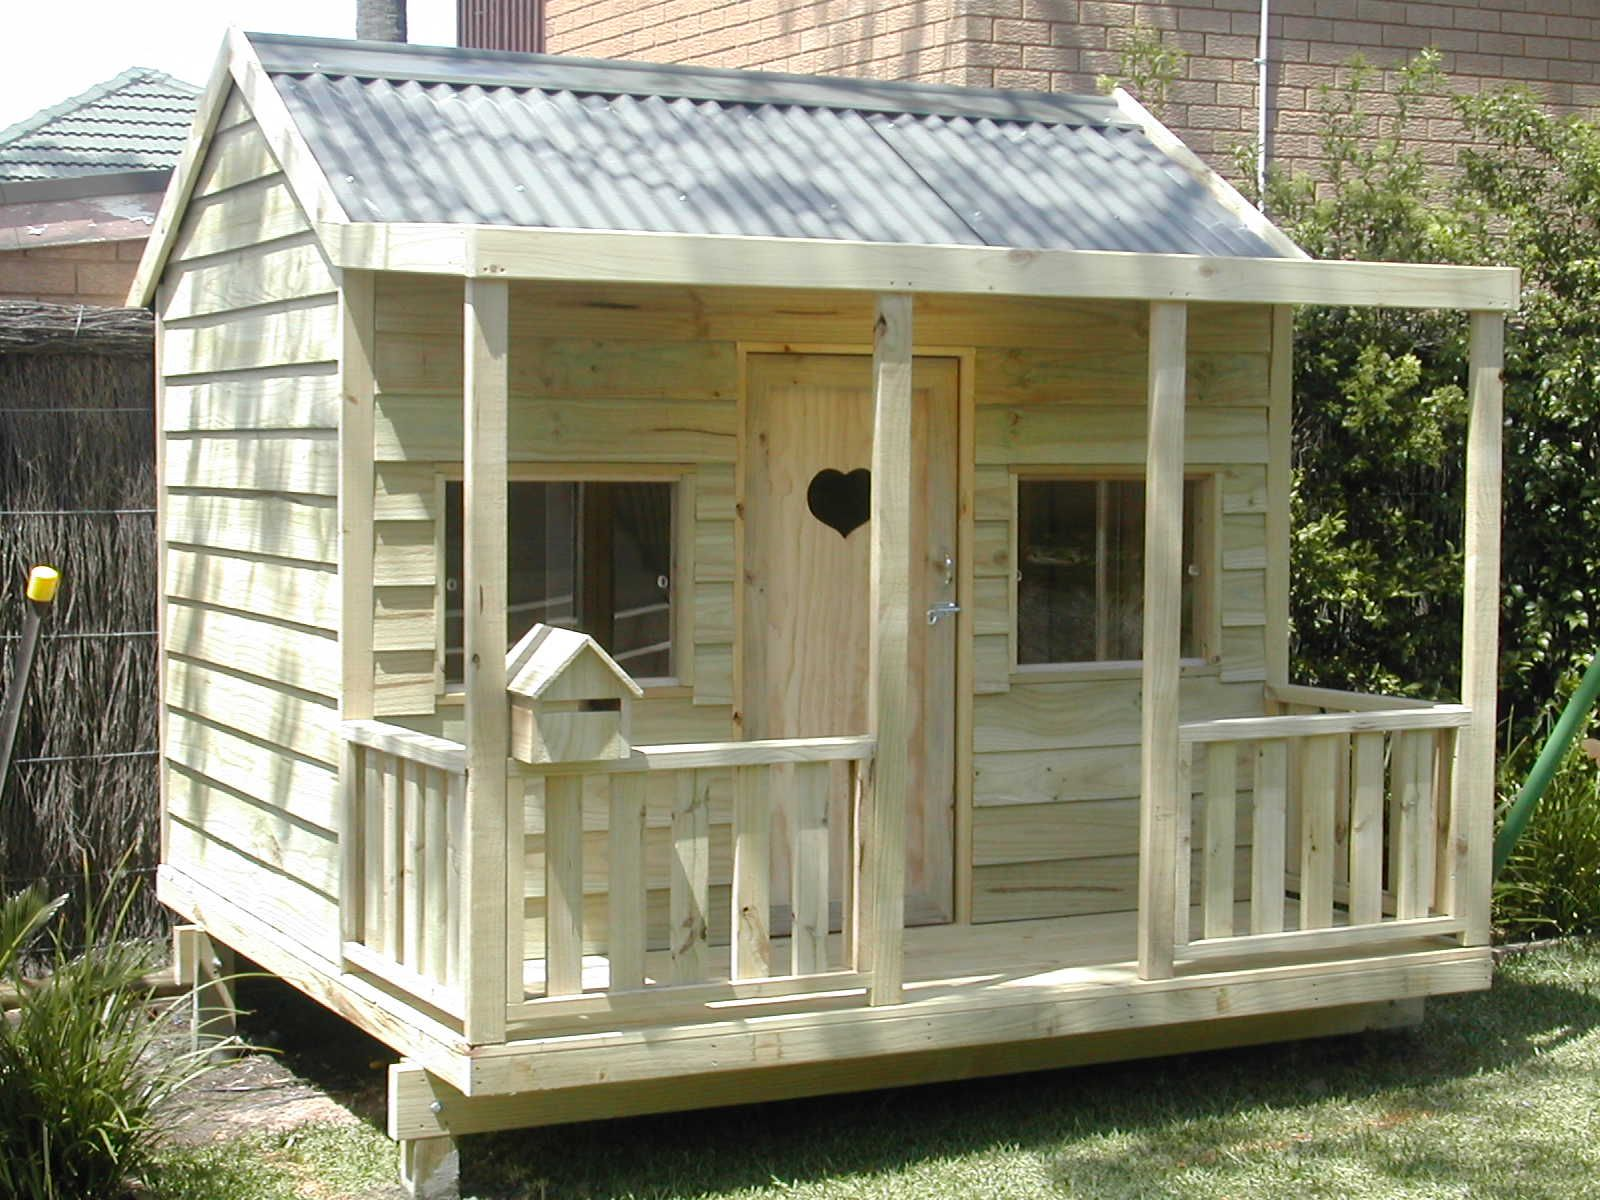 Diy Cubby House Plans Australia Home Design Style